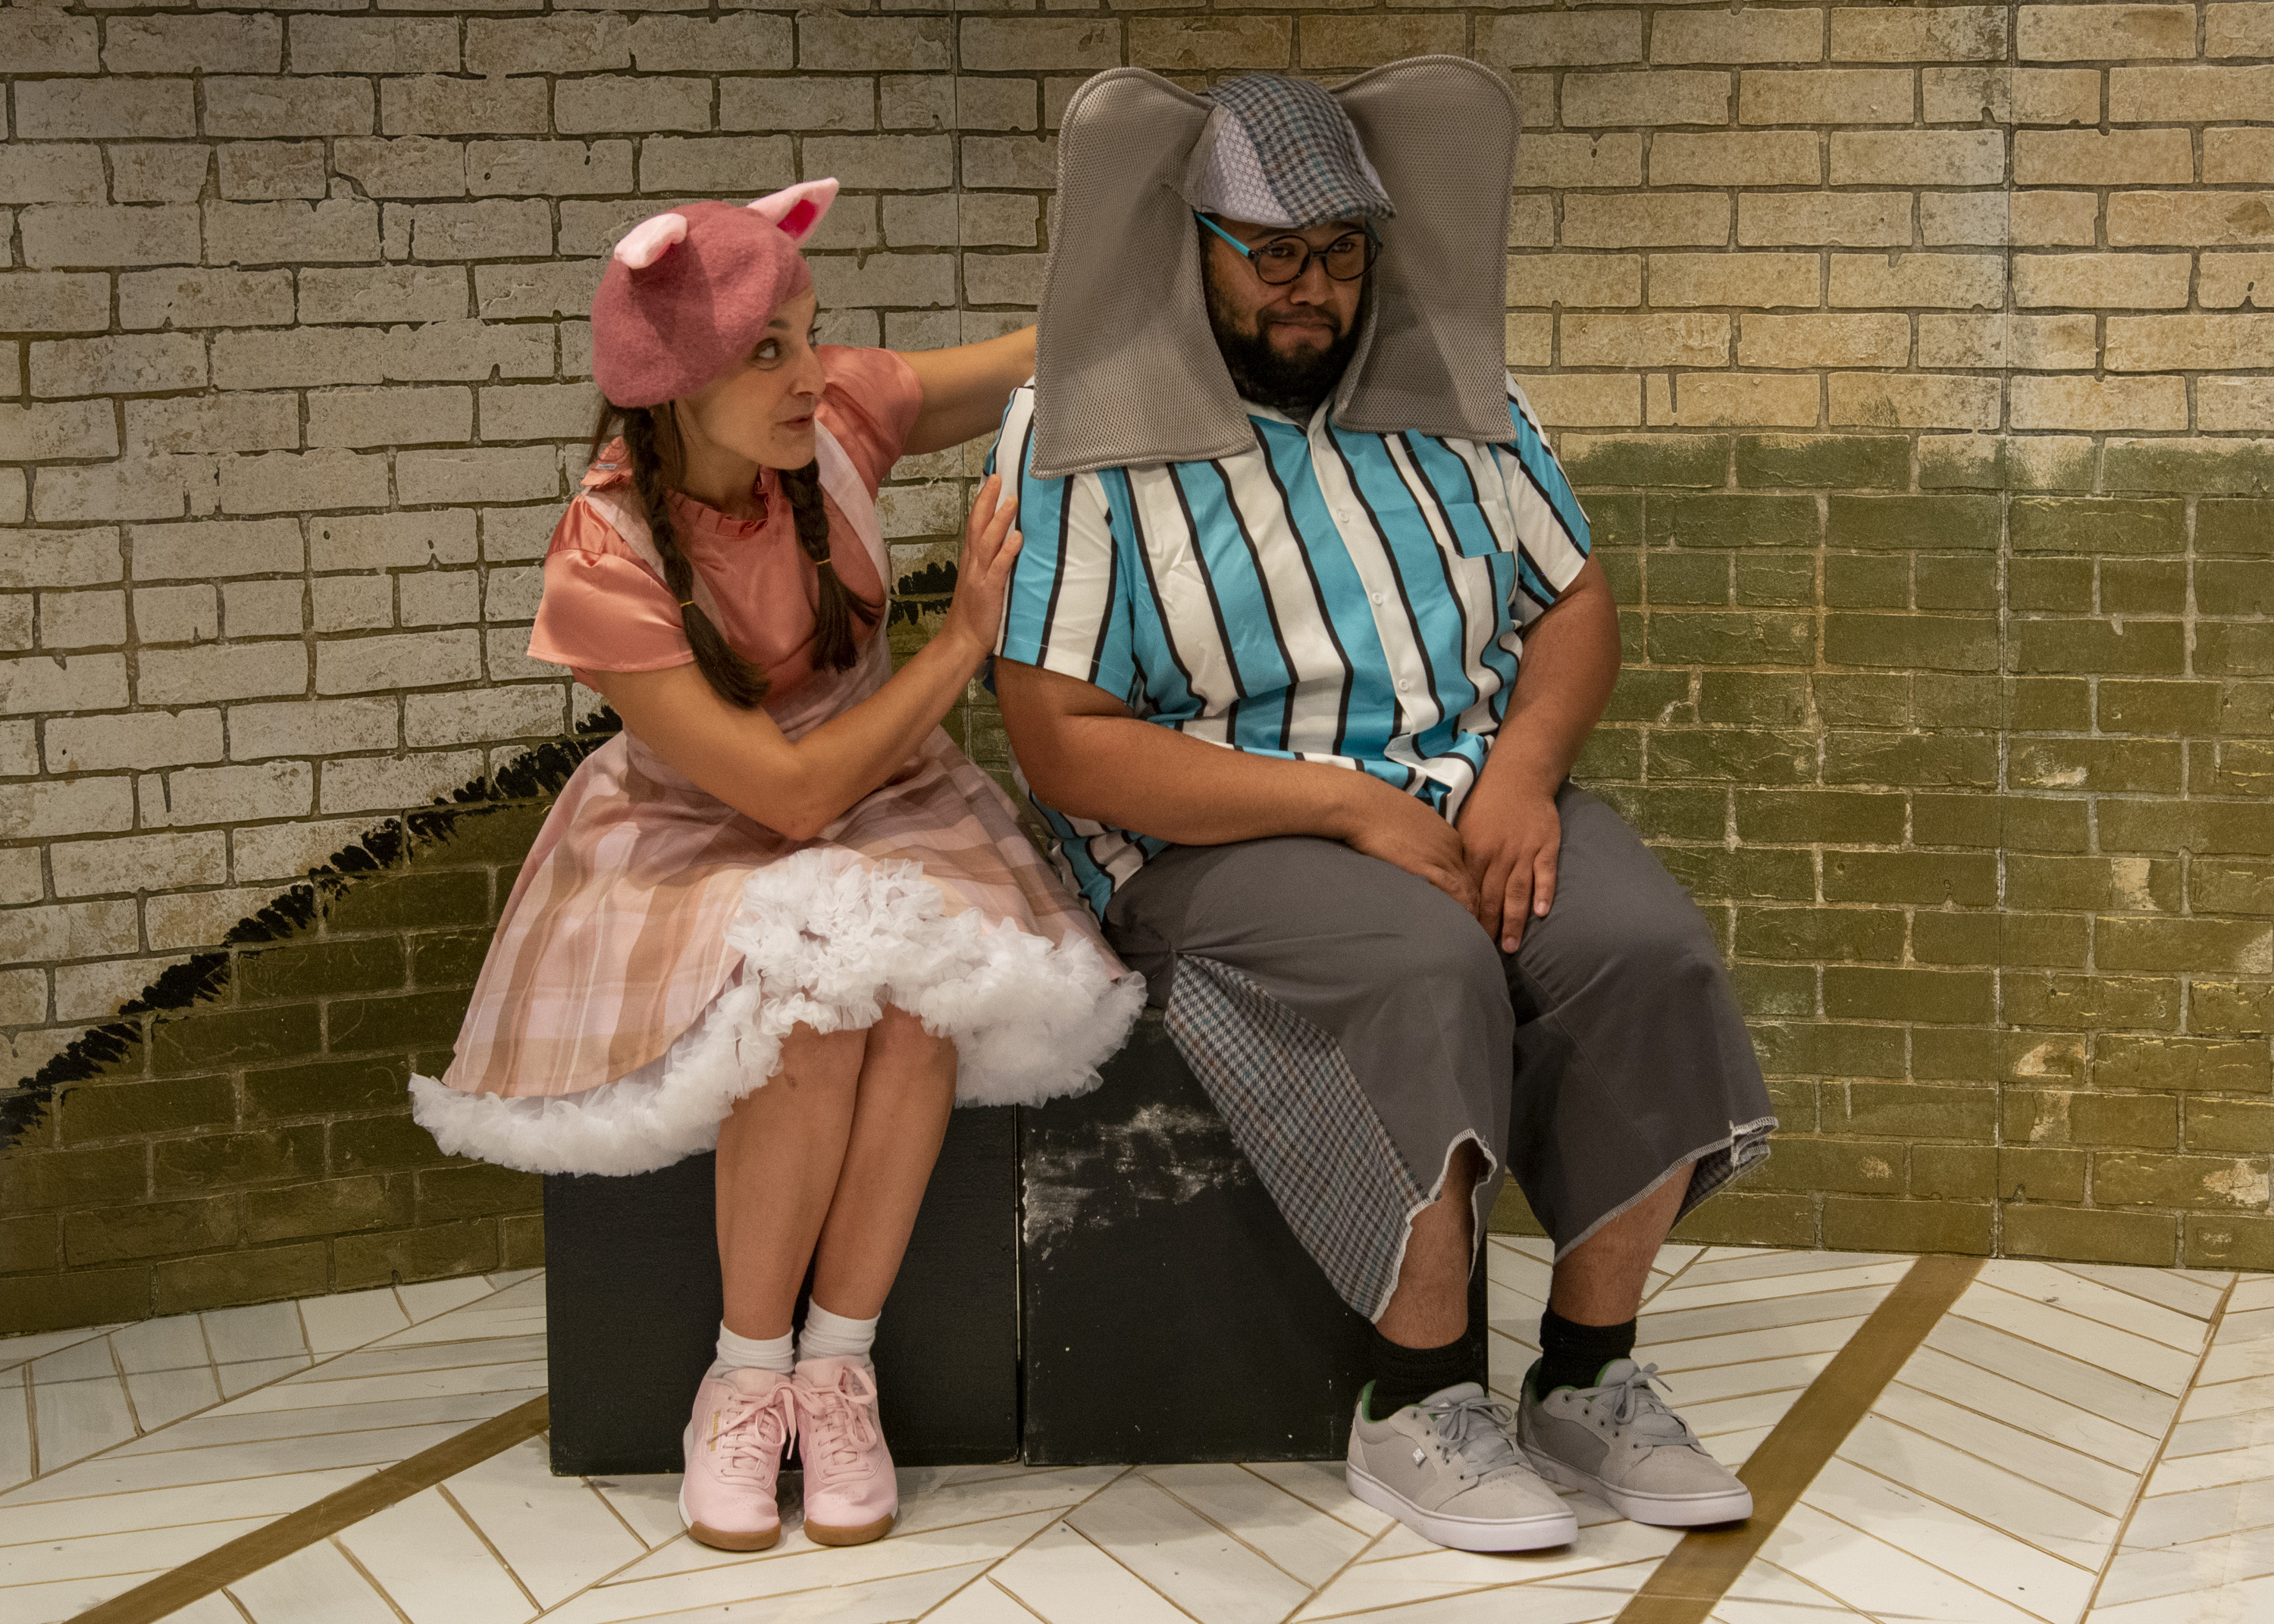 Feeling all the feels, Karen Vincent as Piggie and Derrick Truby as Gerald navigate friendship and sharing.